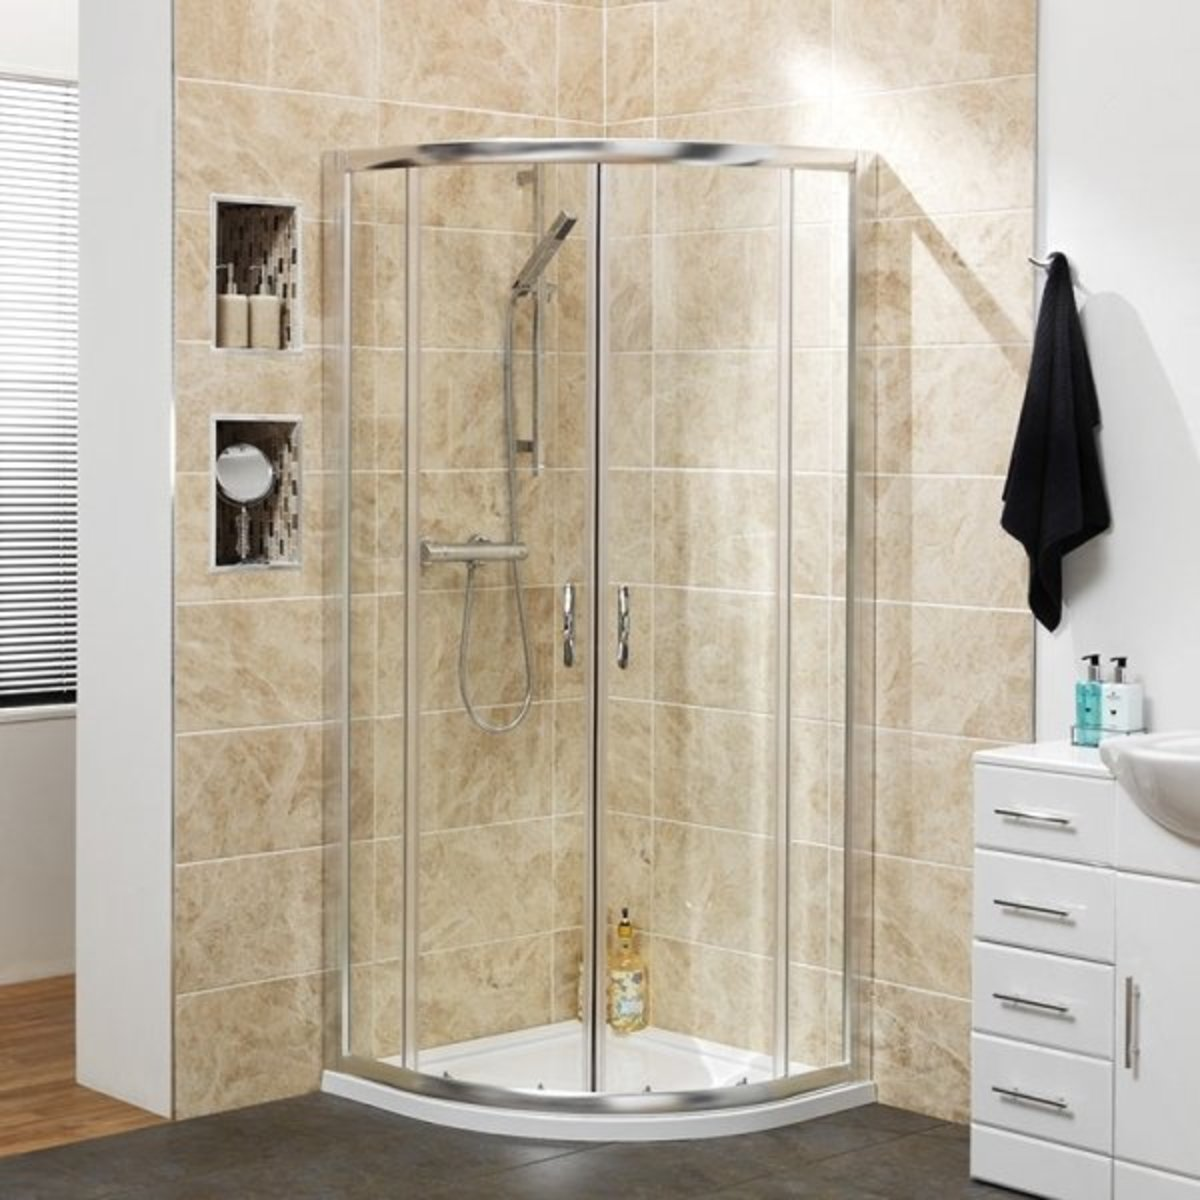 The Pros and Cons of Replacing Your Bath With a Shower